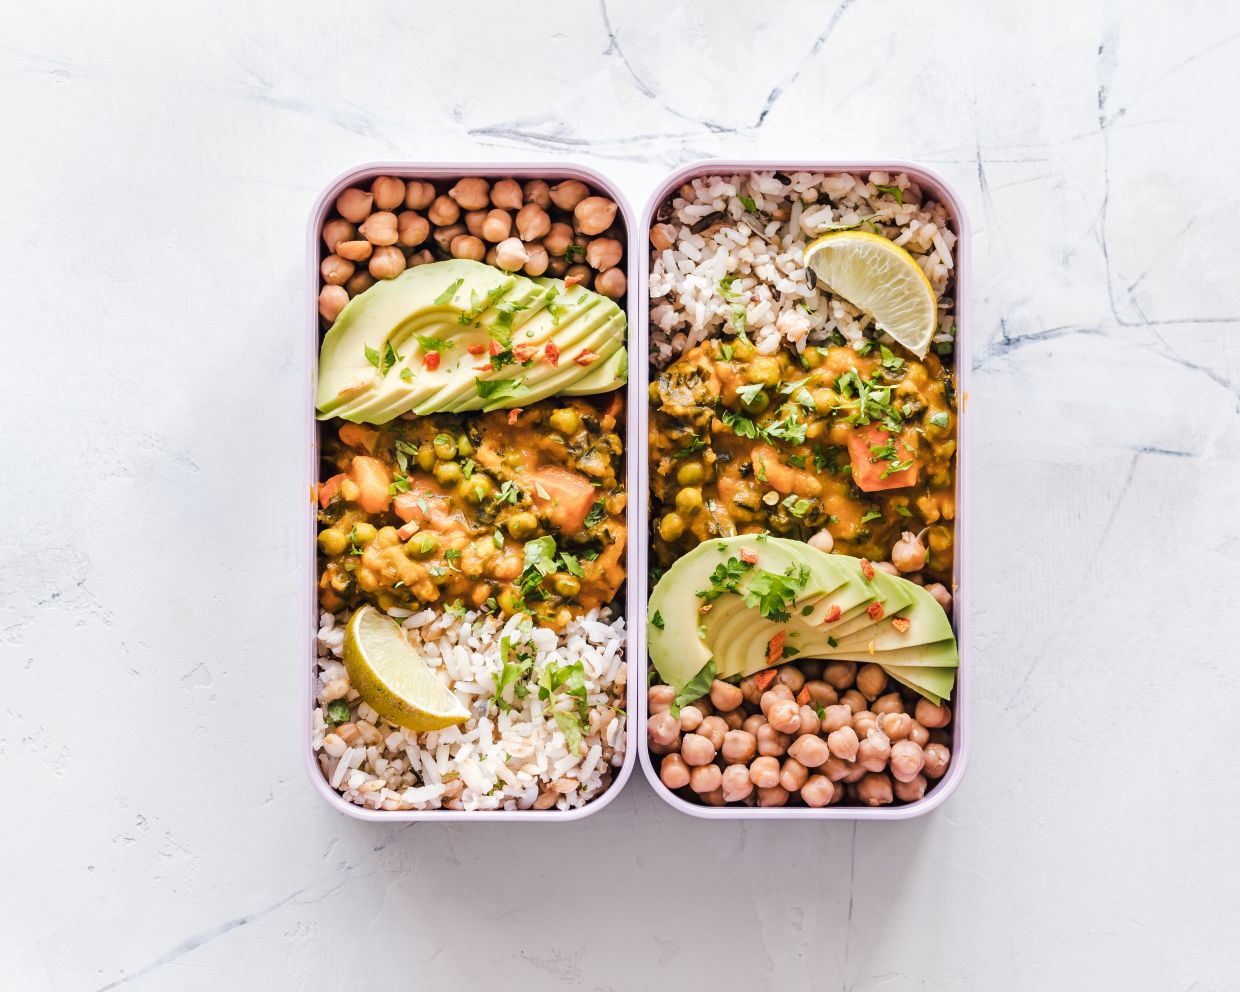 Many families are now opting to support small local home food businesses that make quality meals. — ELLA OLSSON/Pexels